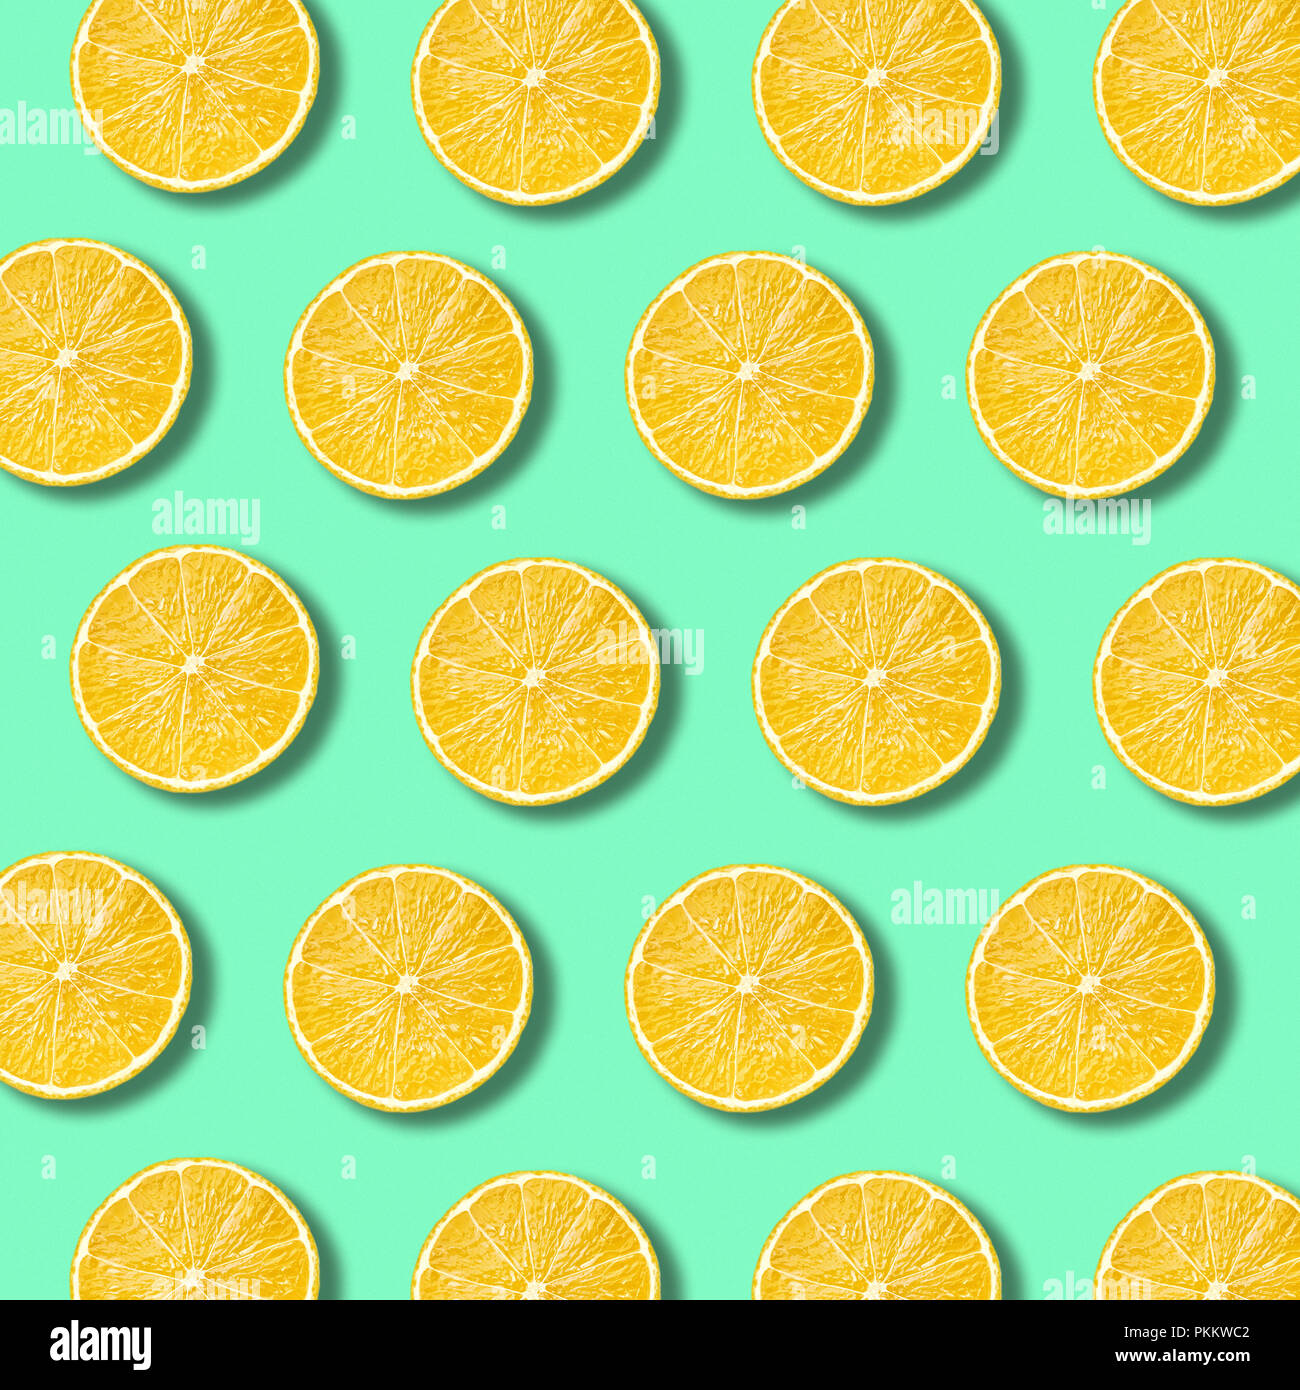 Lemon slices pattern on light vibrant green color background. Minimal flat lay food texture - Stock Image